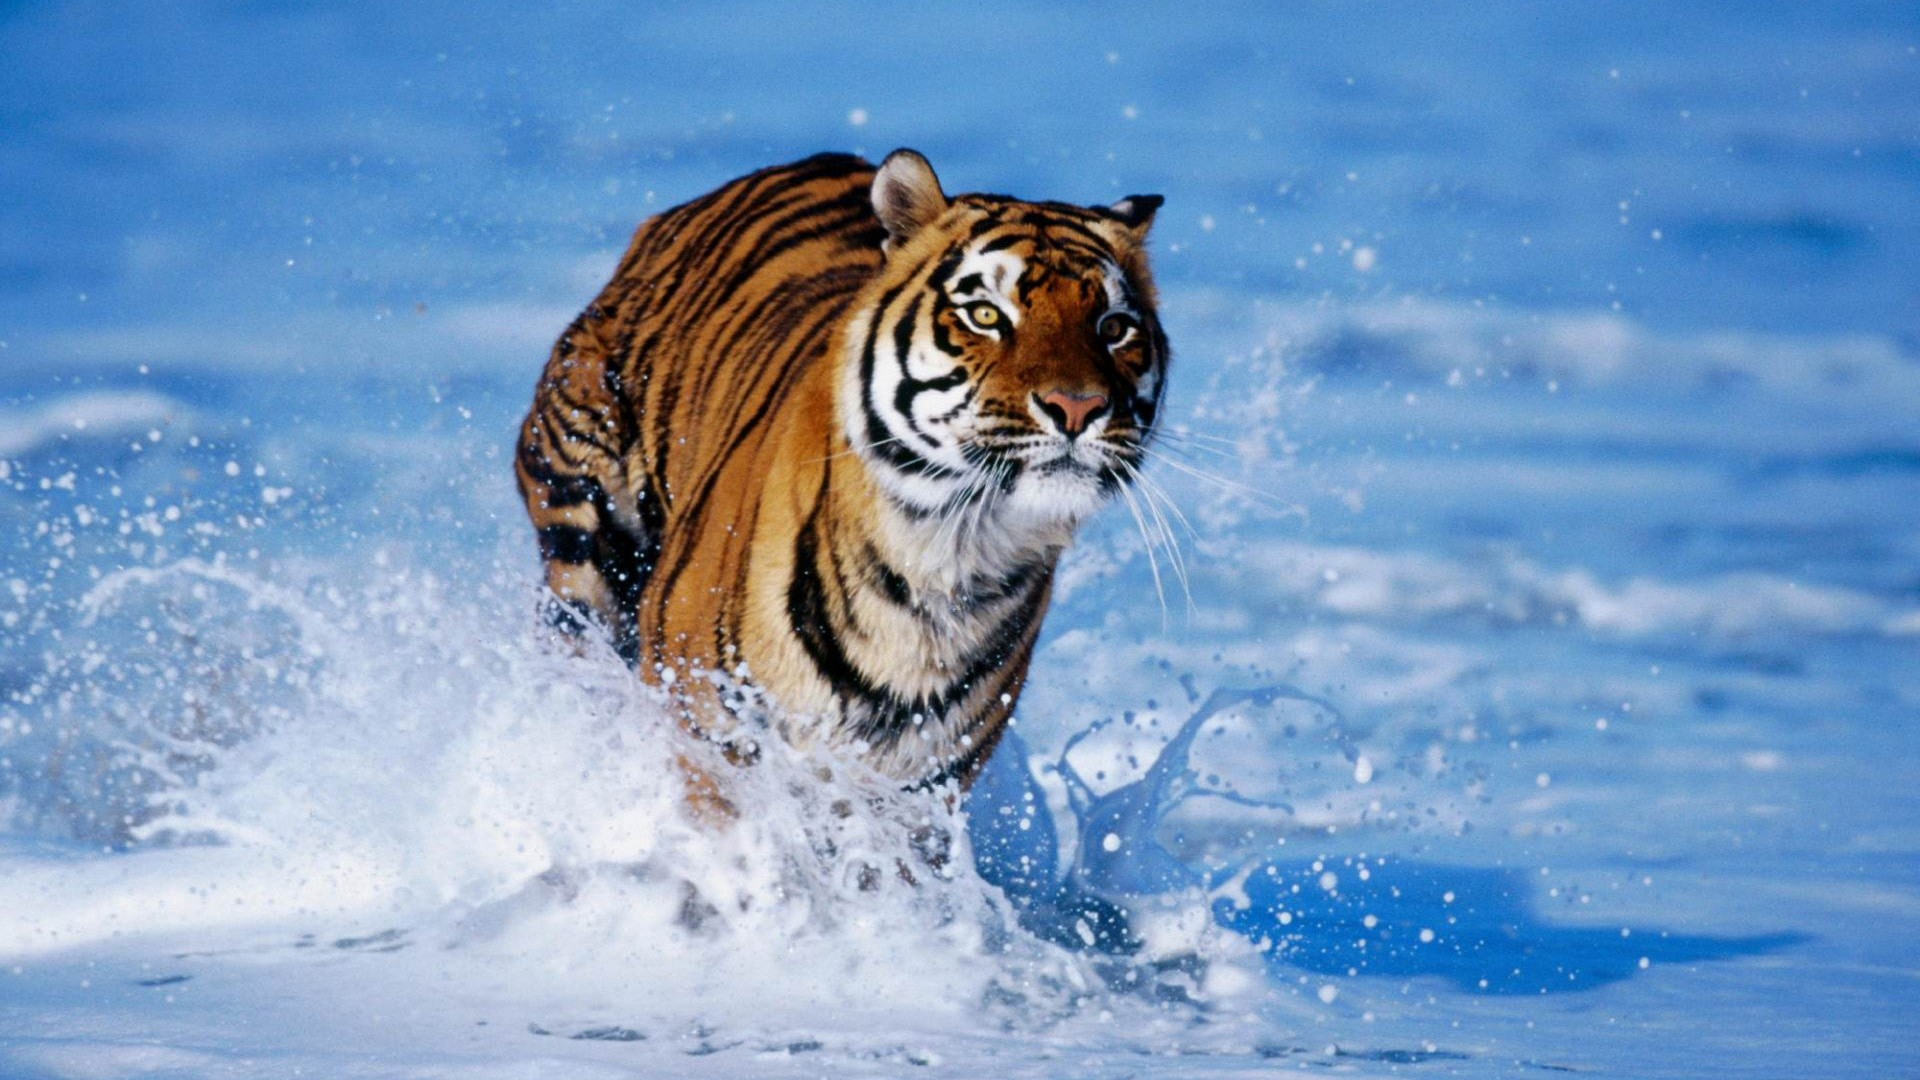 Wild Animal Wallpaper wallpaper wallpaper hd background desktop 1920x1080